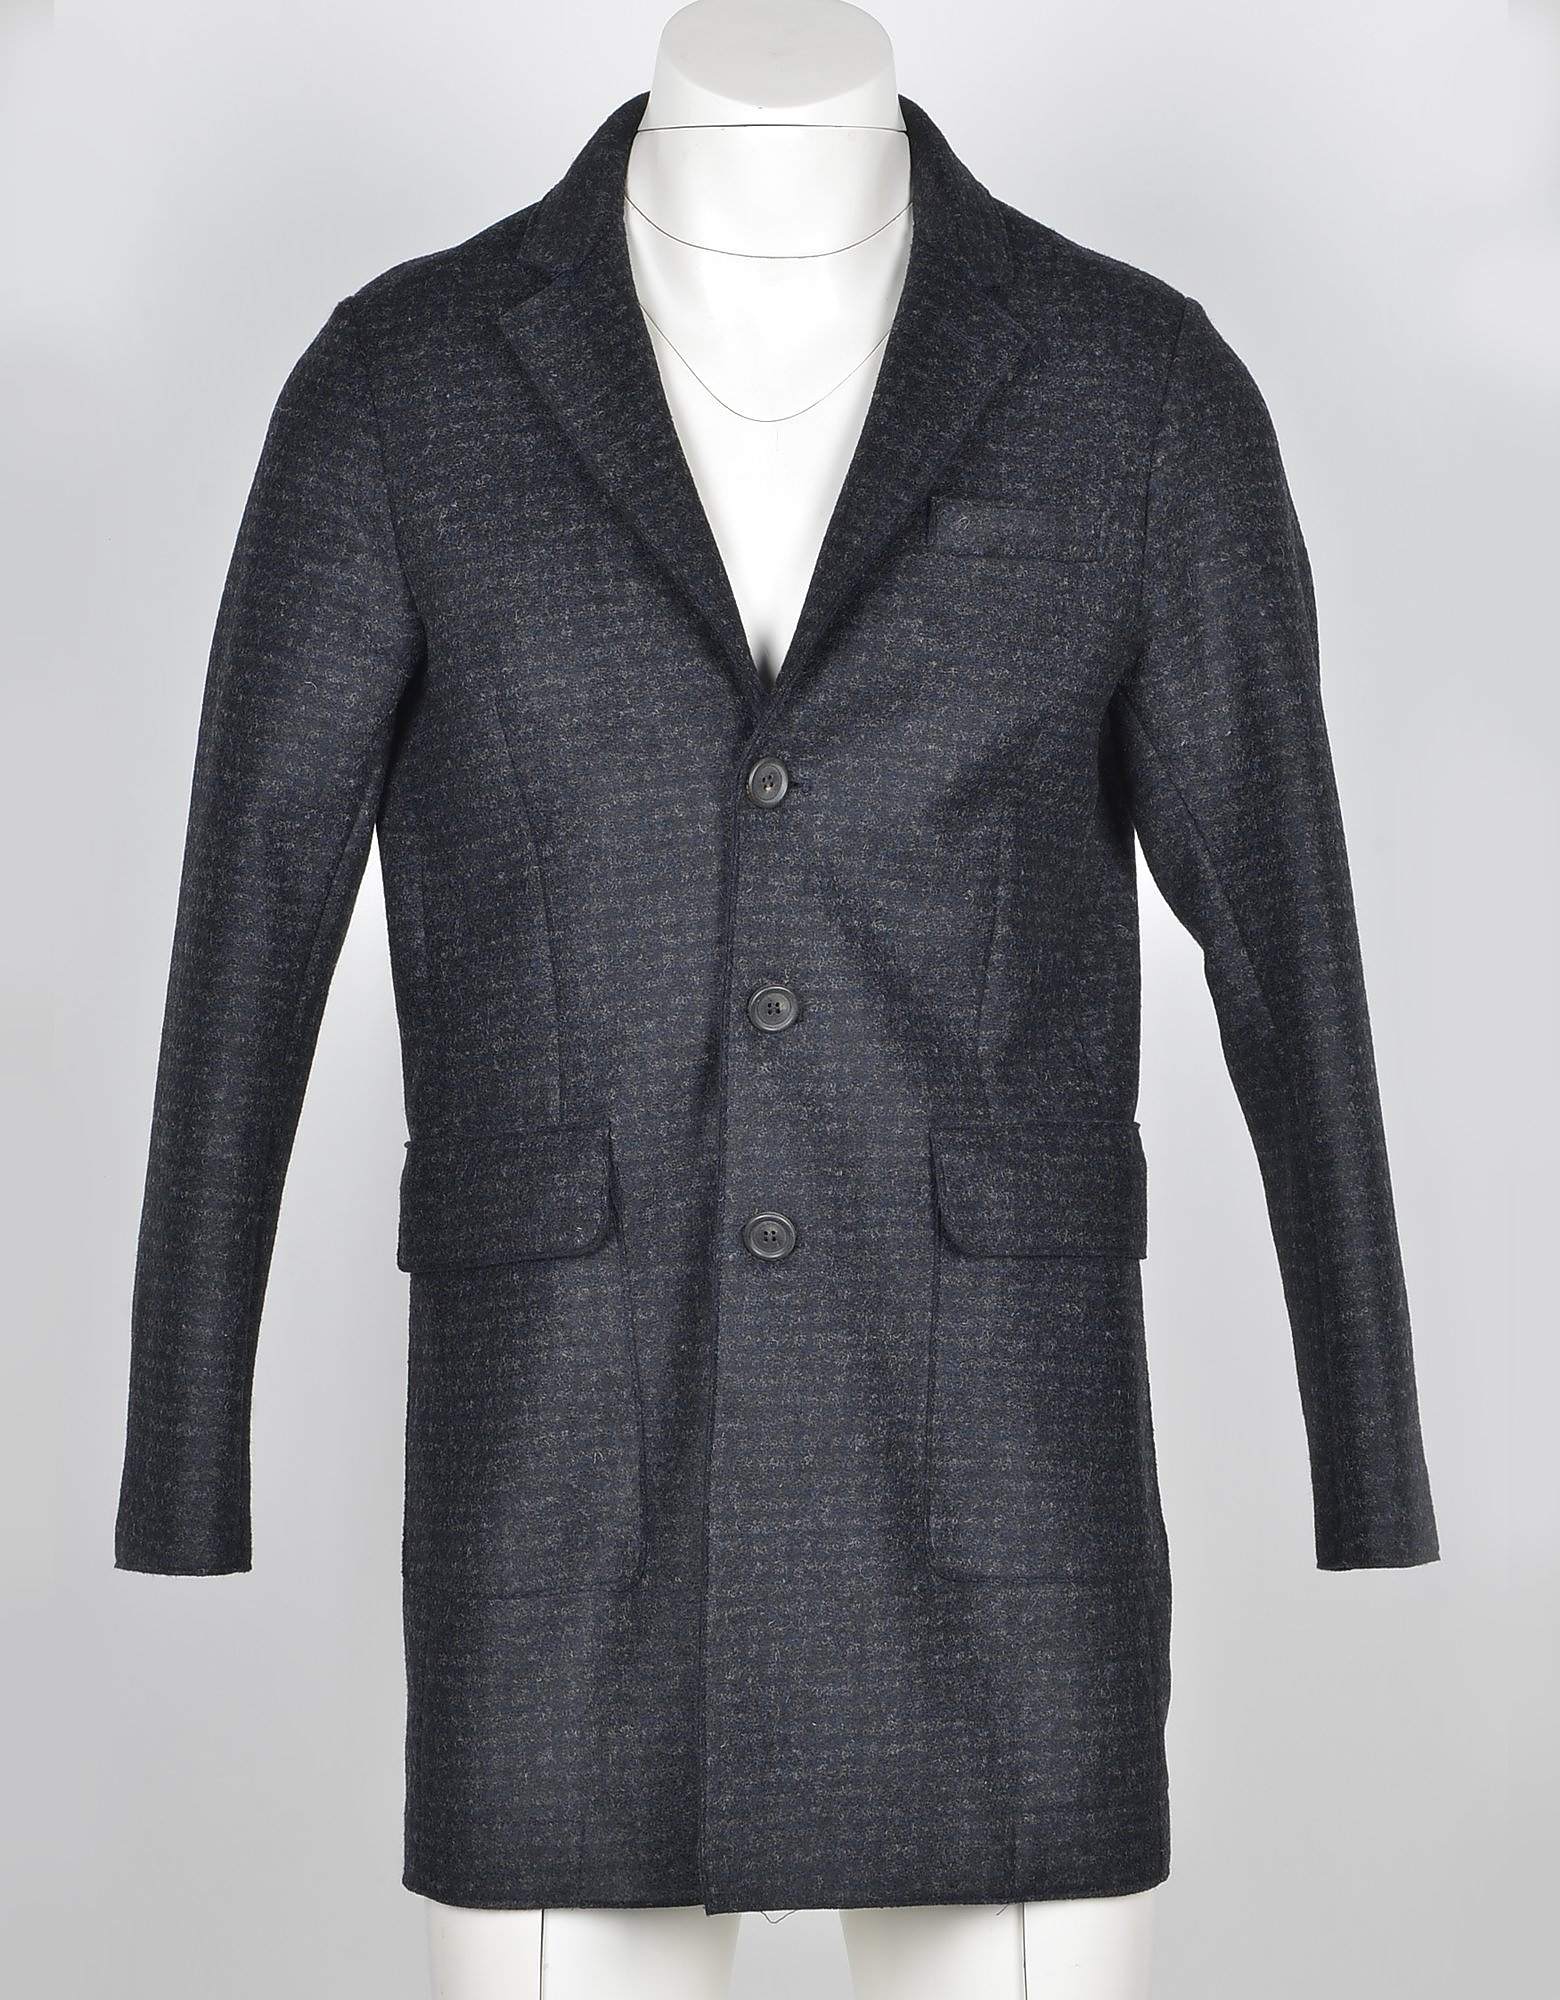 Fradi Designer Coats & Jackets, Men's Anthracite Coat